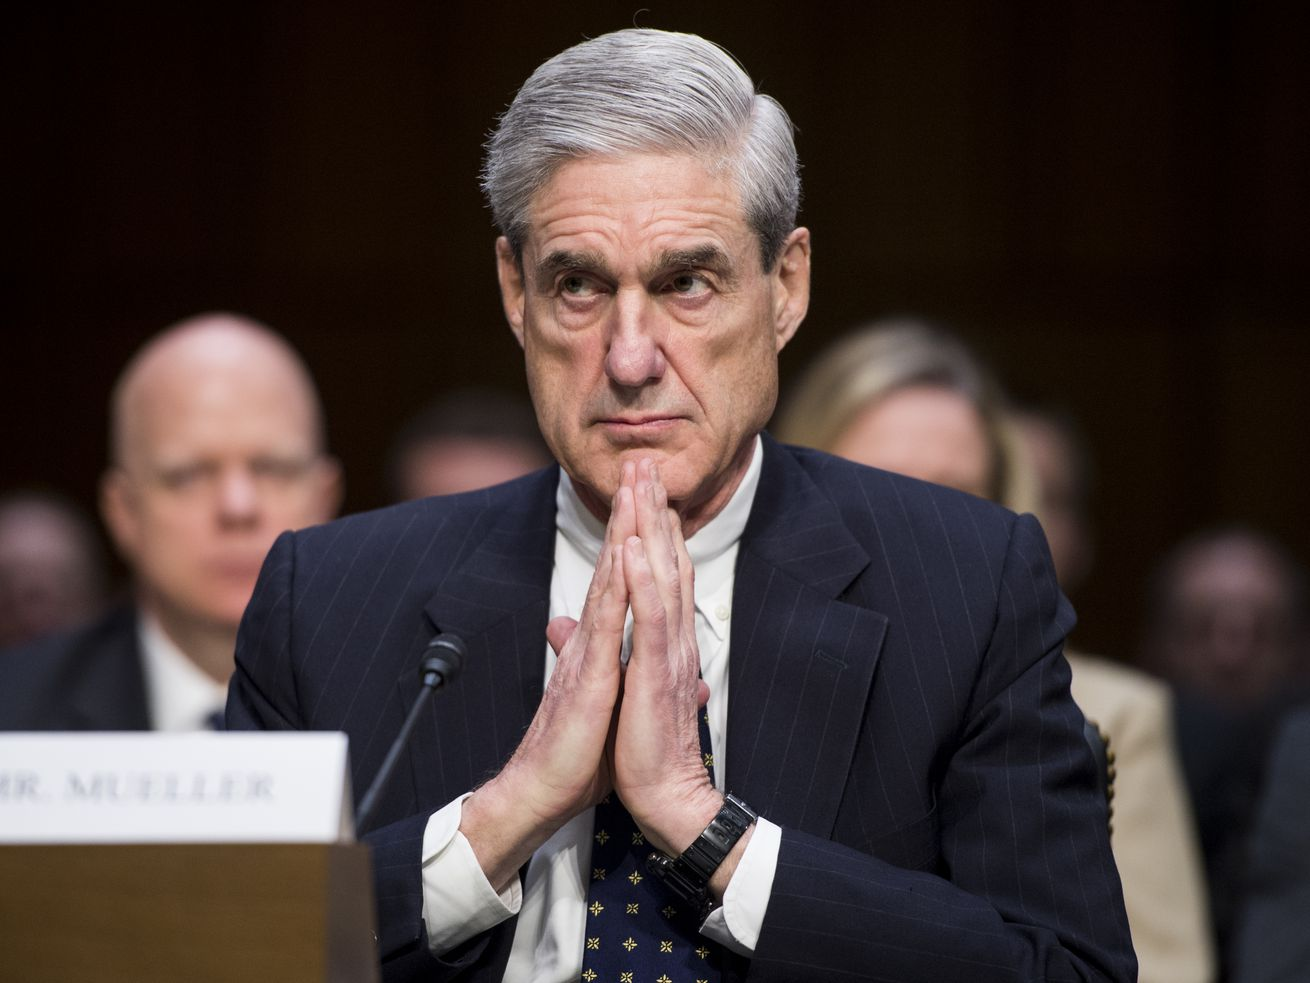 Robert Mueller testifying before the Senate Select Intelligence Committee in 2013.